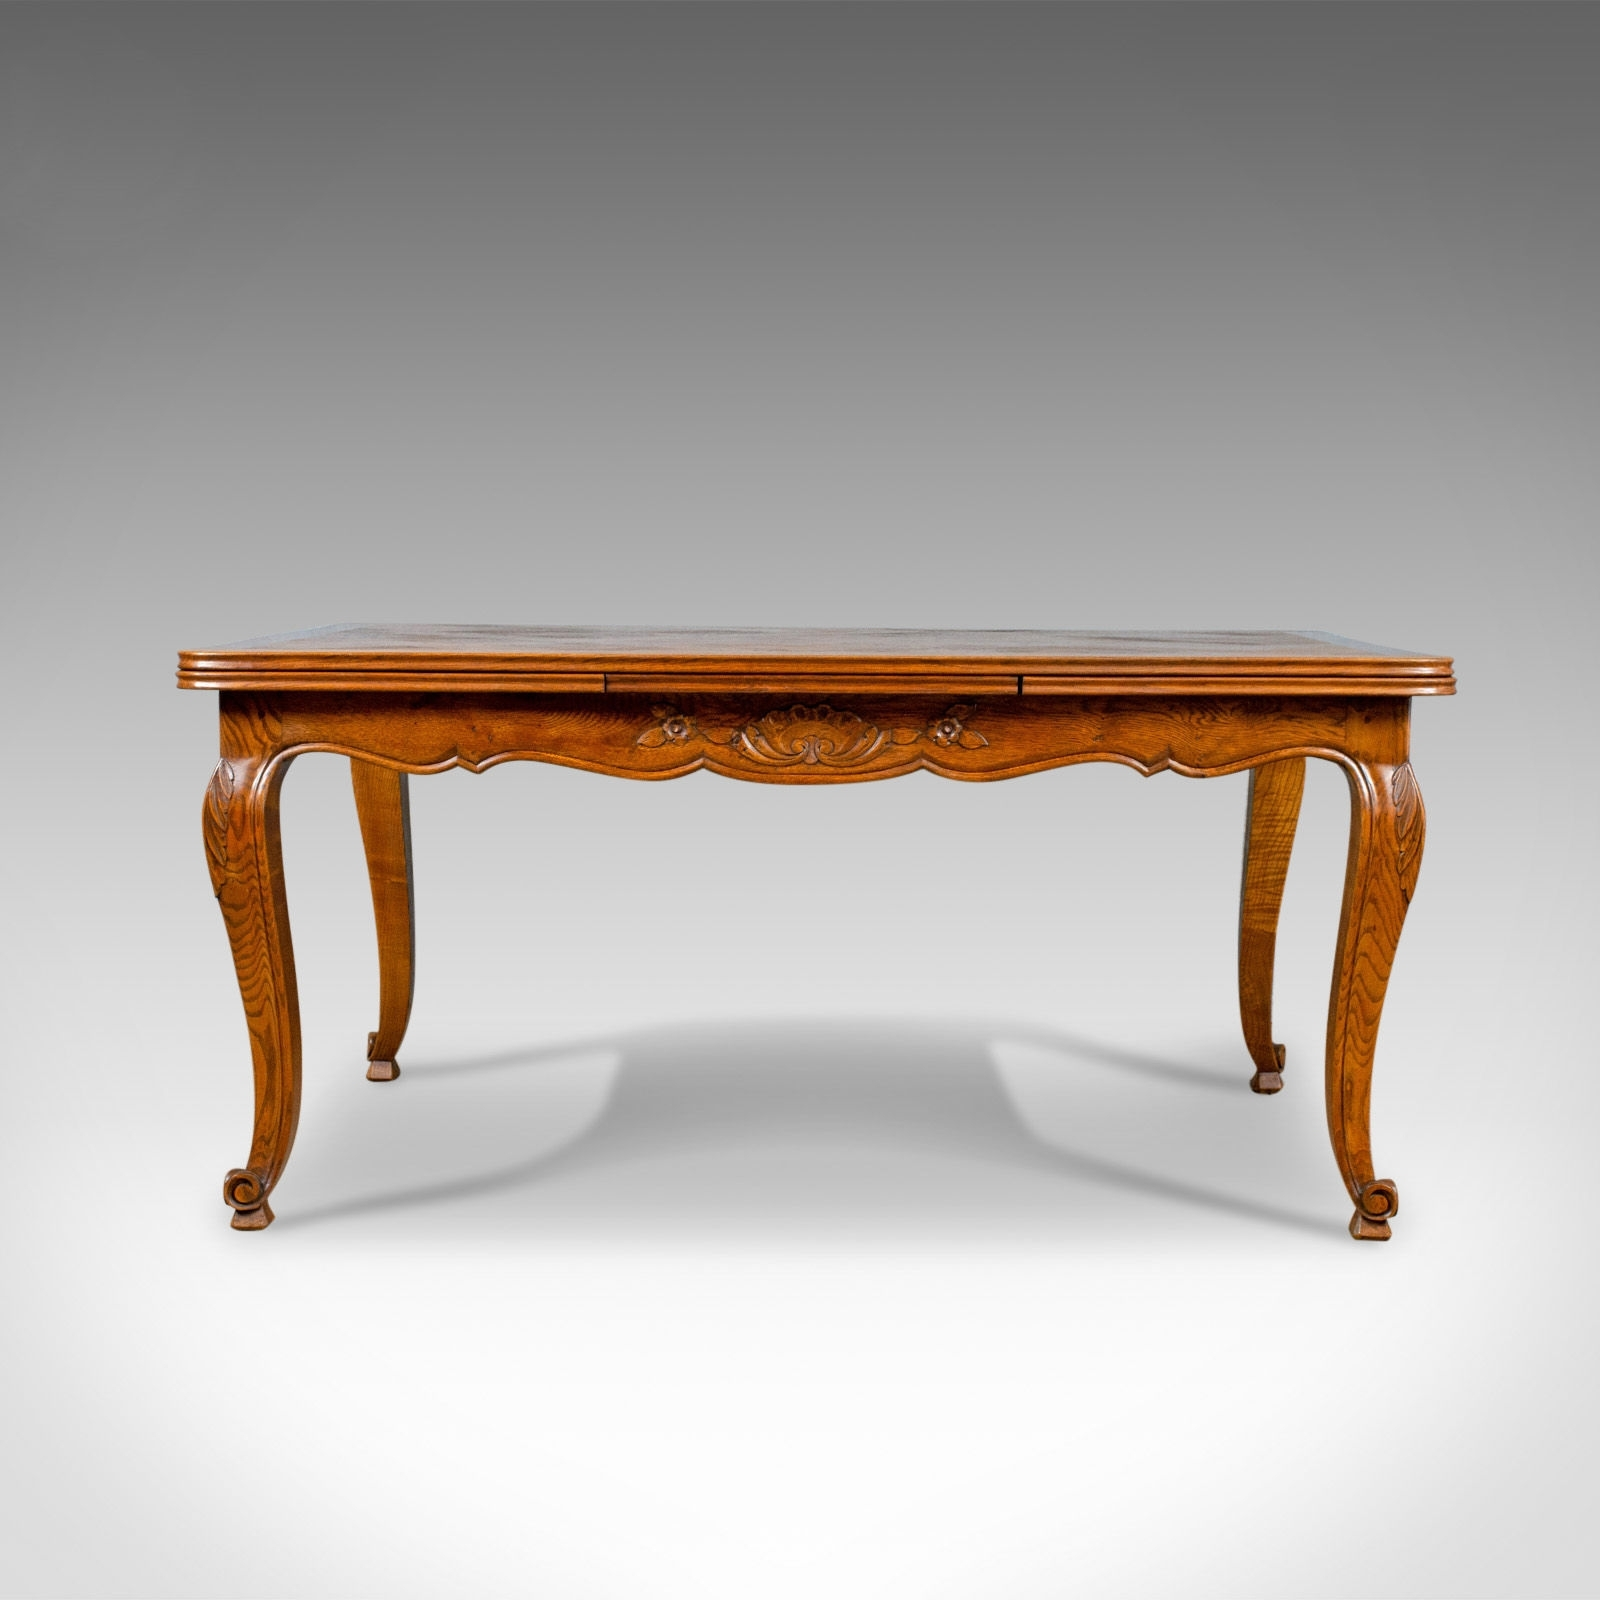 Most Current French Extending Dining Tables Regarding Antique Dining Table, French, Extending, Draw Leaf, Oak Parquet (View 25 of 25)